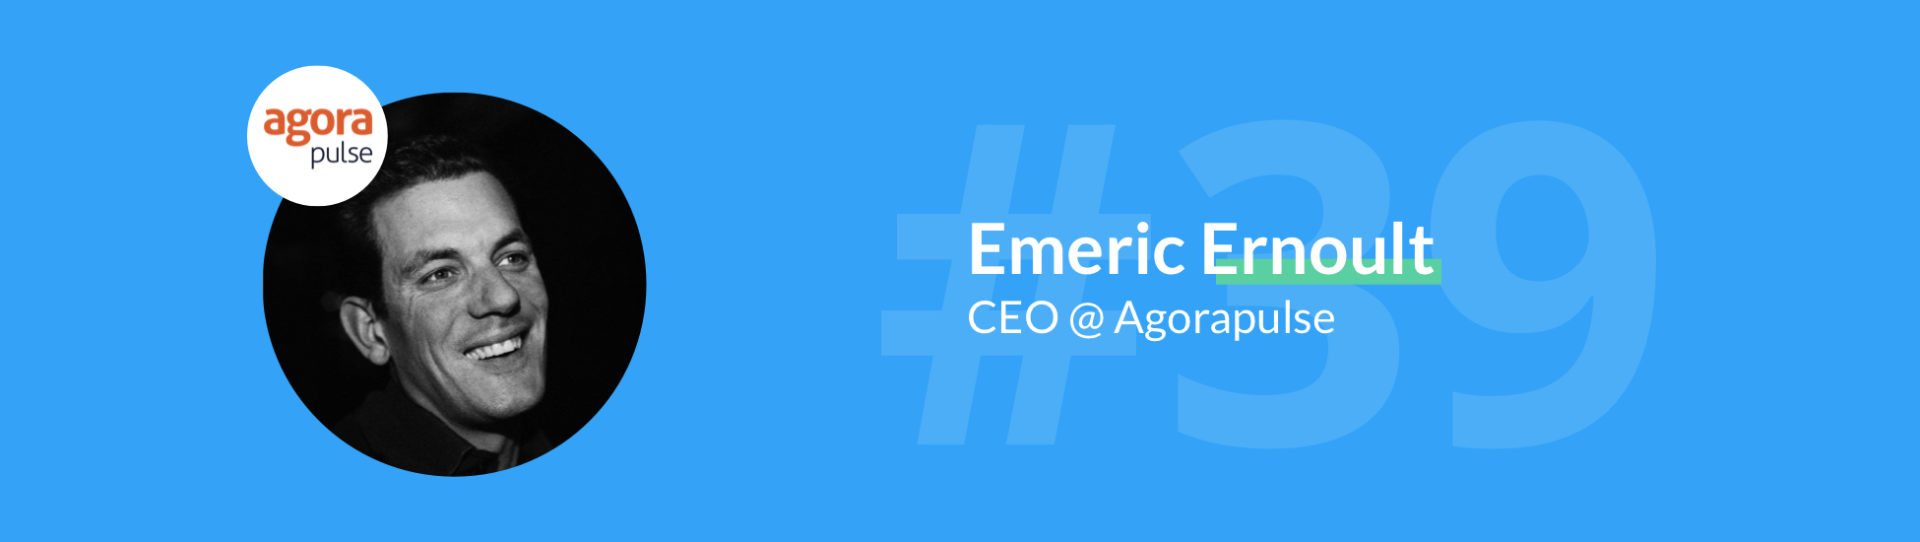 emeric ernoult agorapulse growth